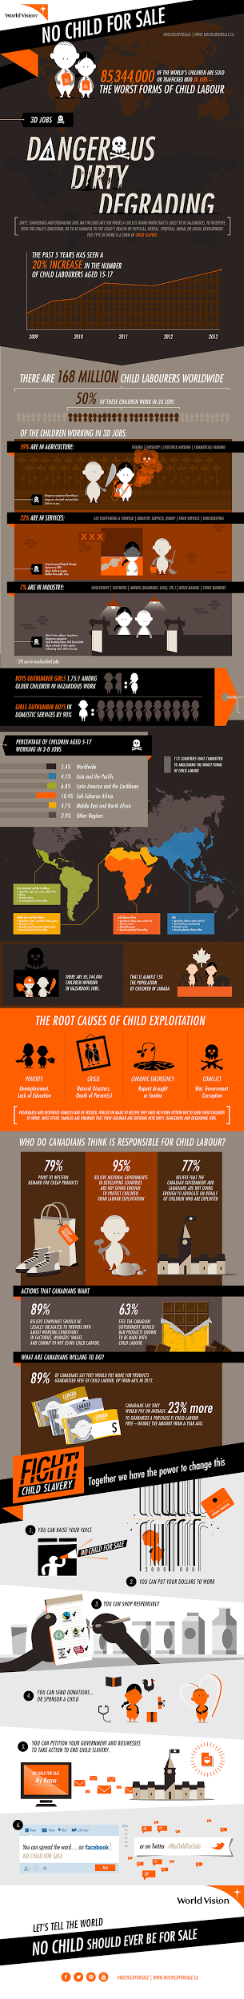 infographic for nonprofits example by No Child for Sale